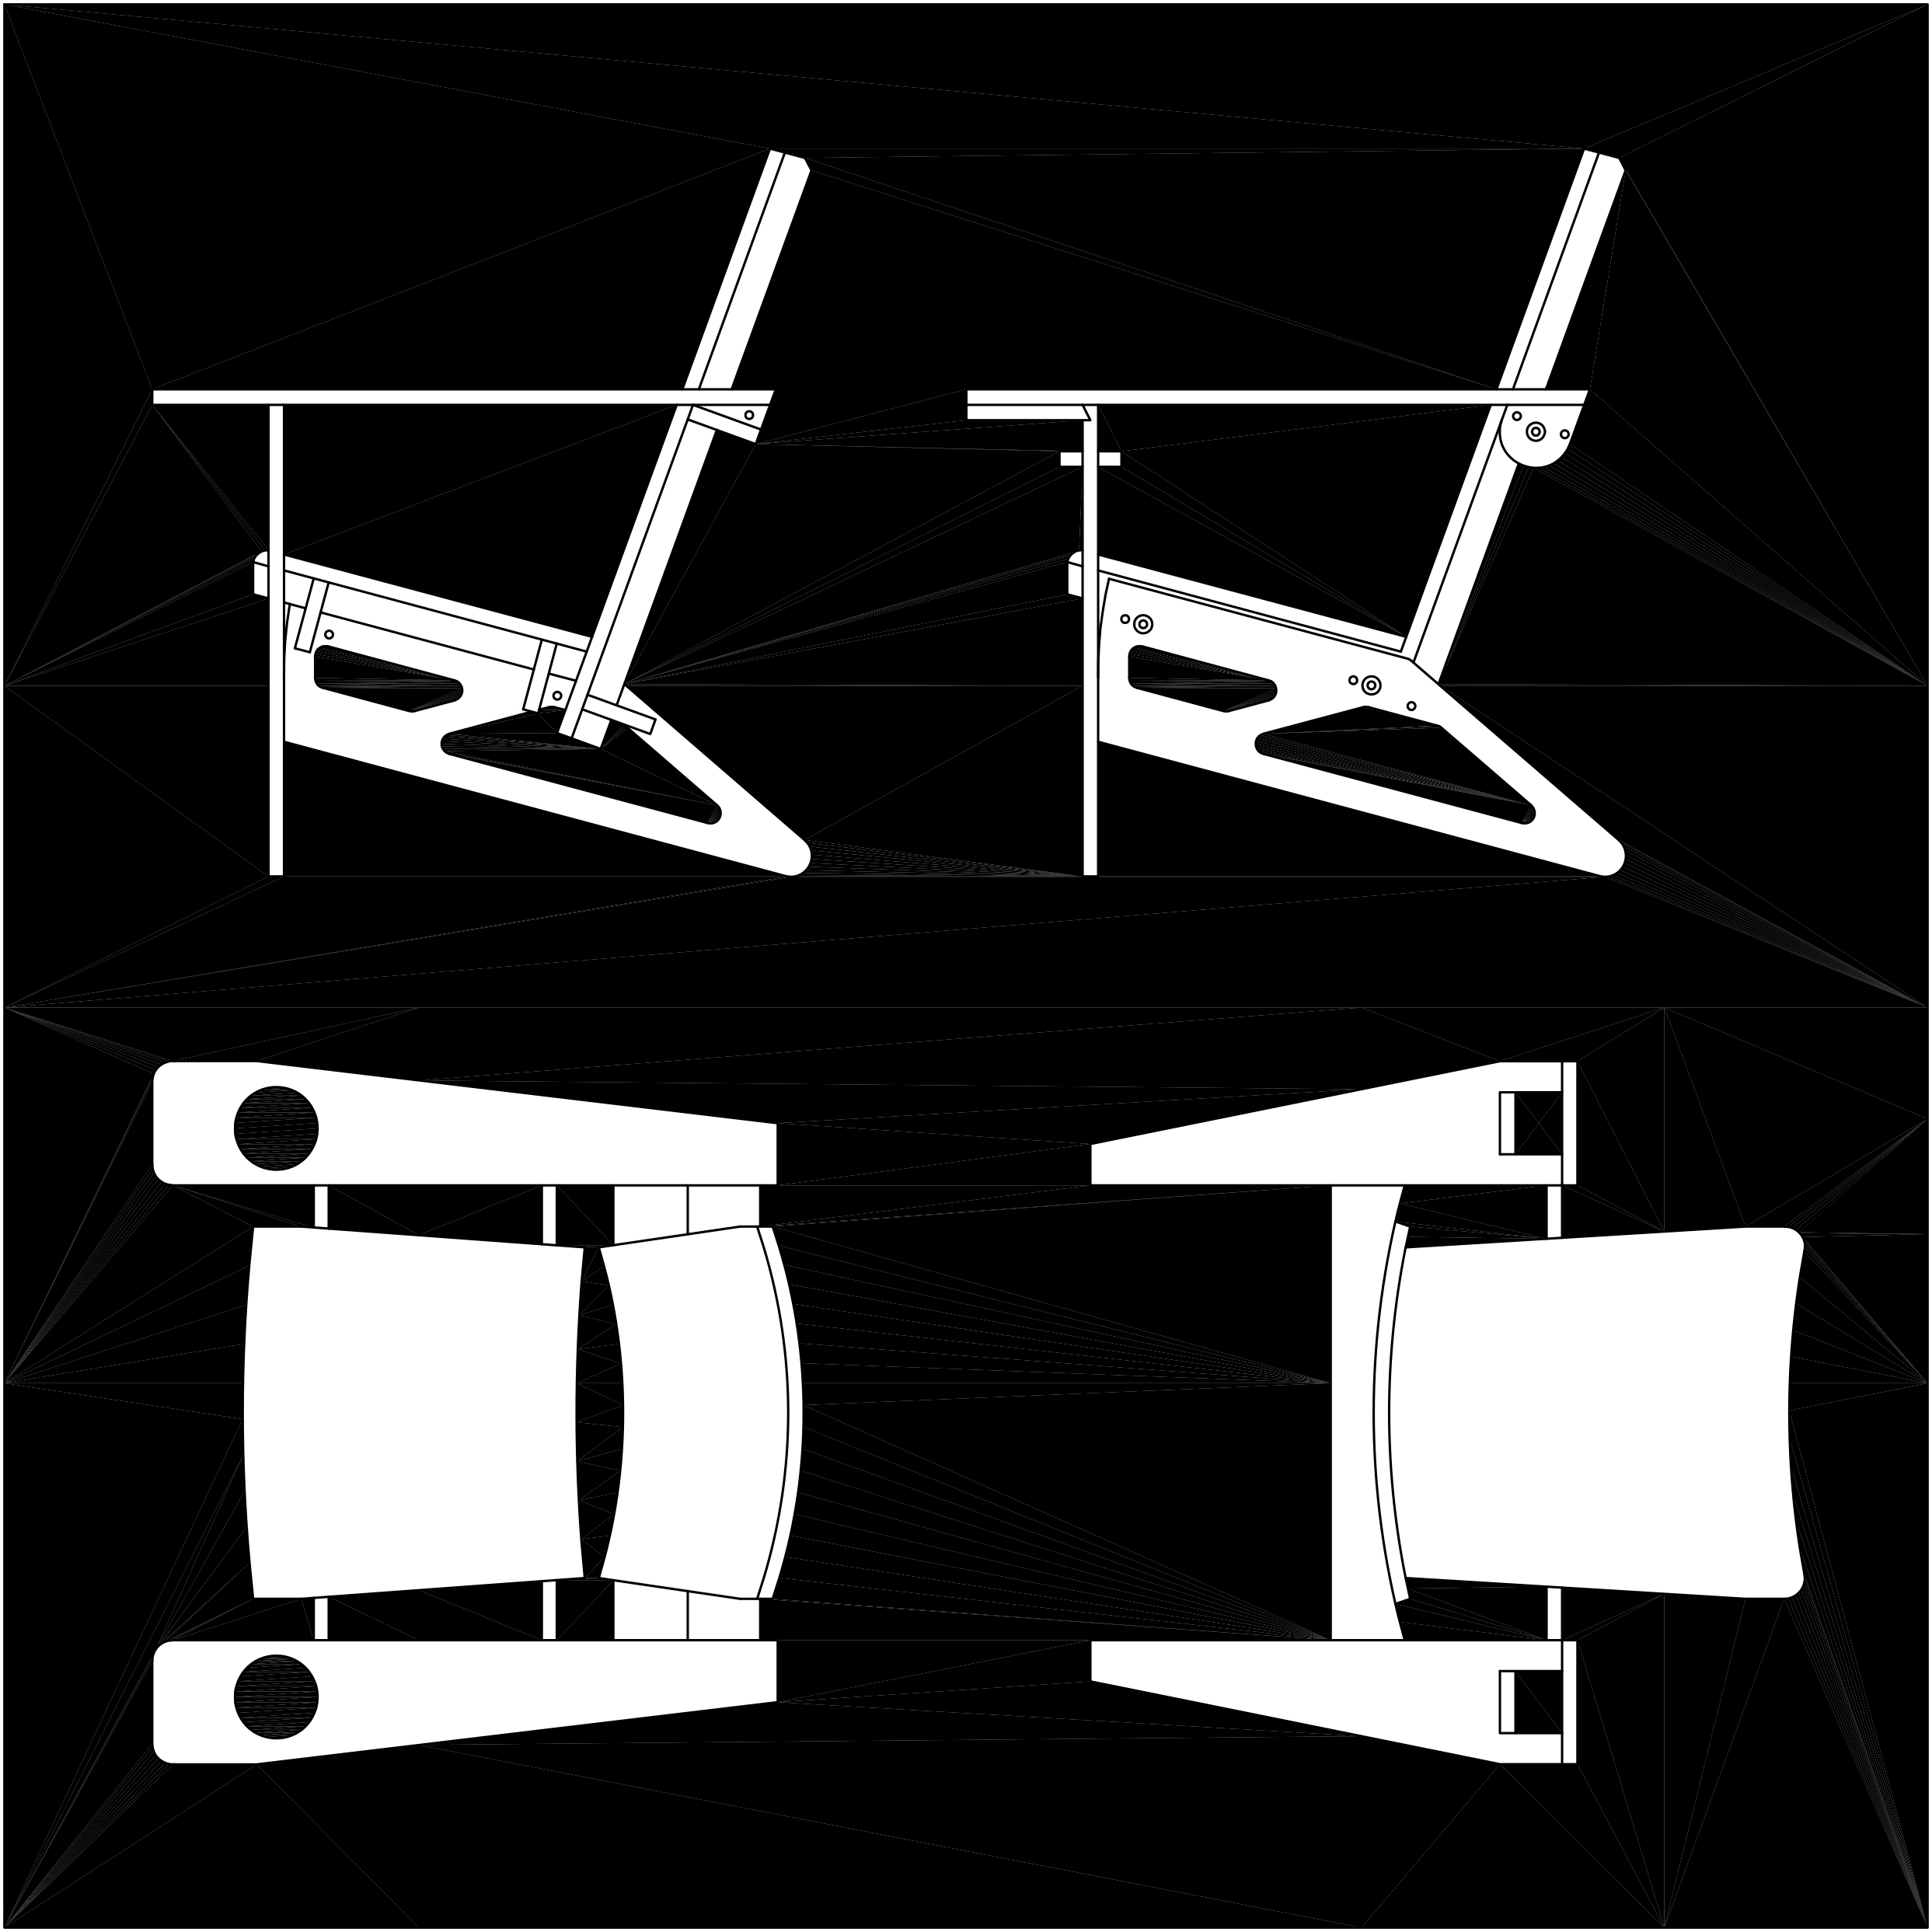 EARLY DRAWINGS OF CHAIR